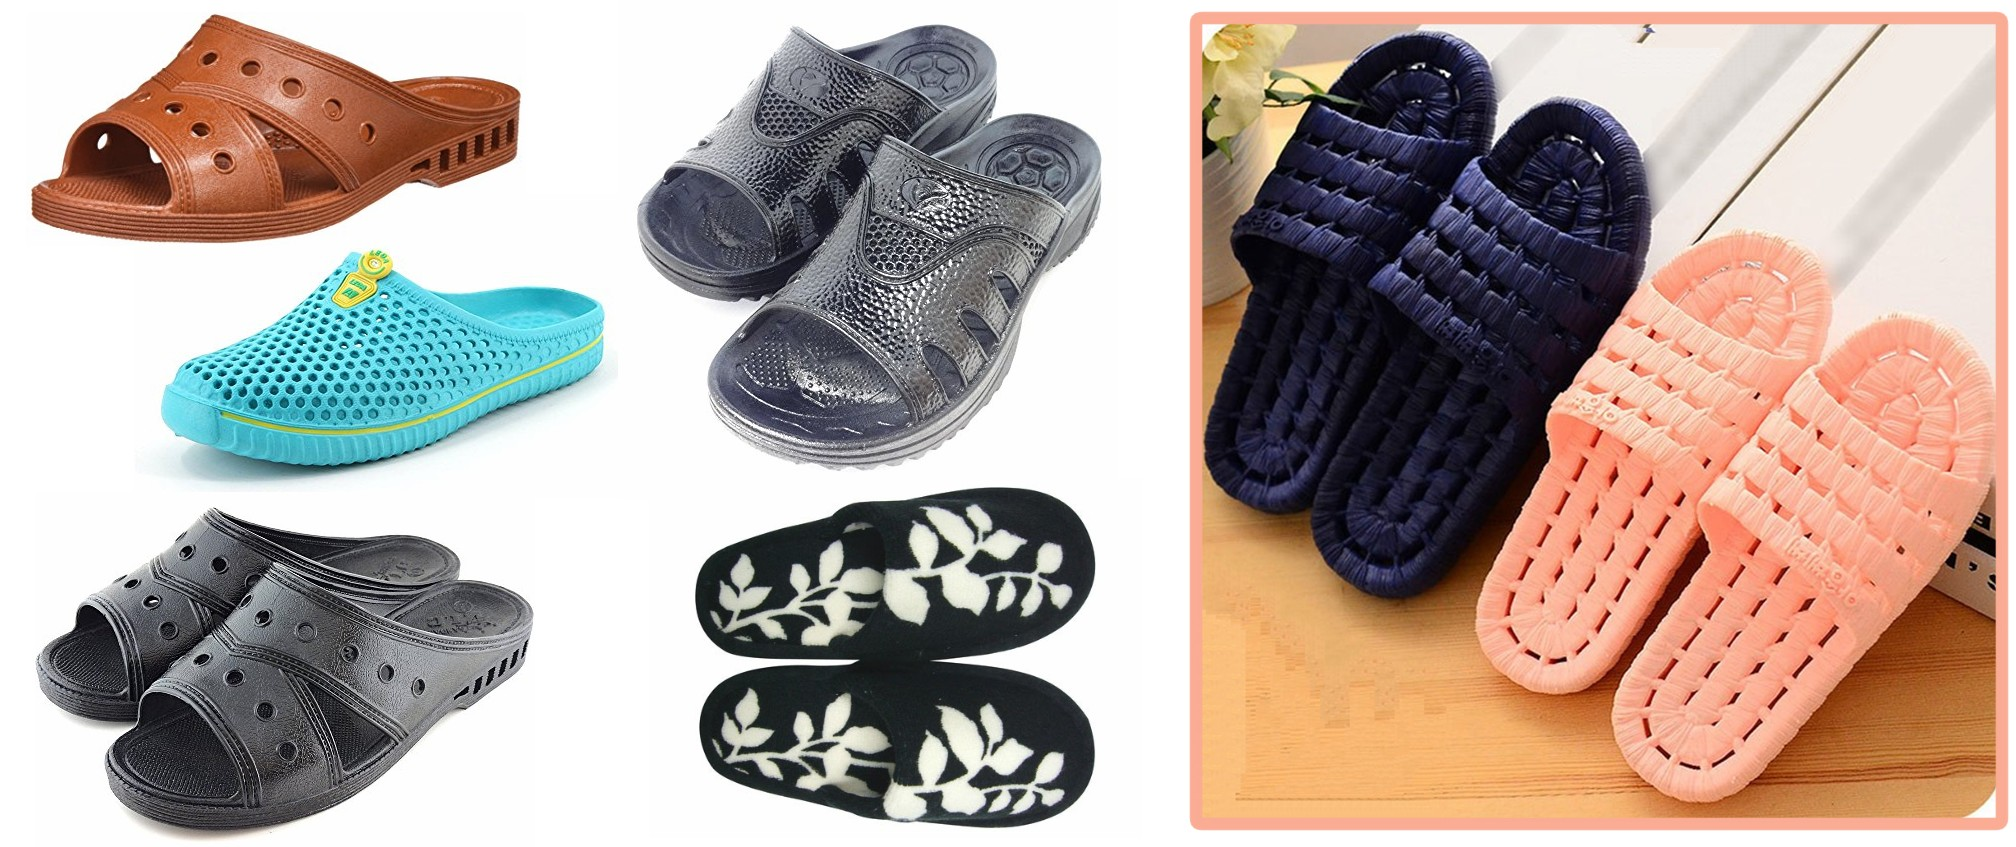 00159b12fc31 Japanese House Slippers to Keep You Comfortable Year-Round